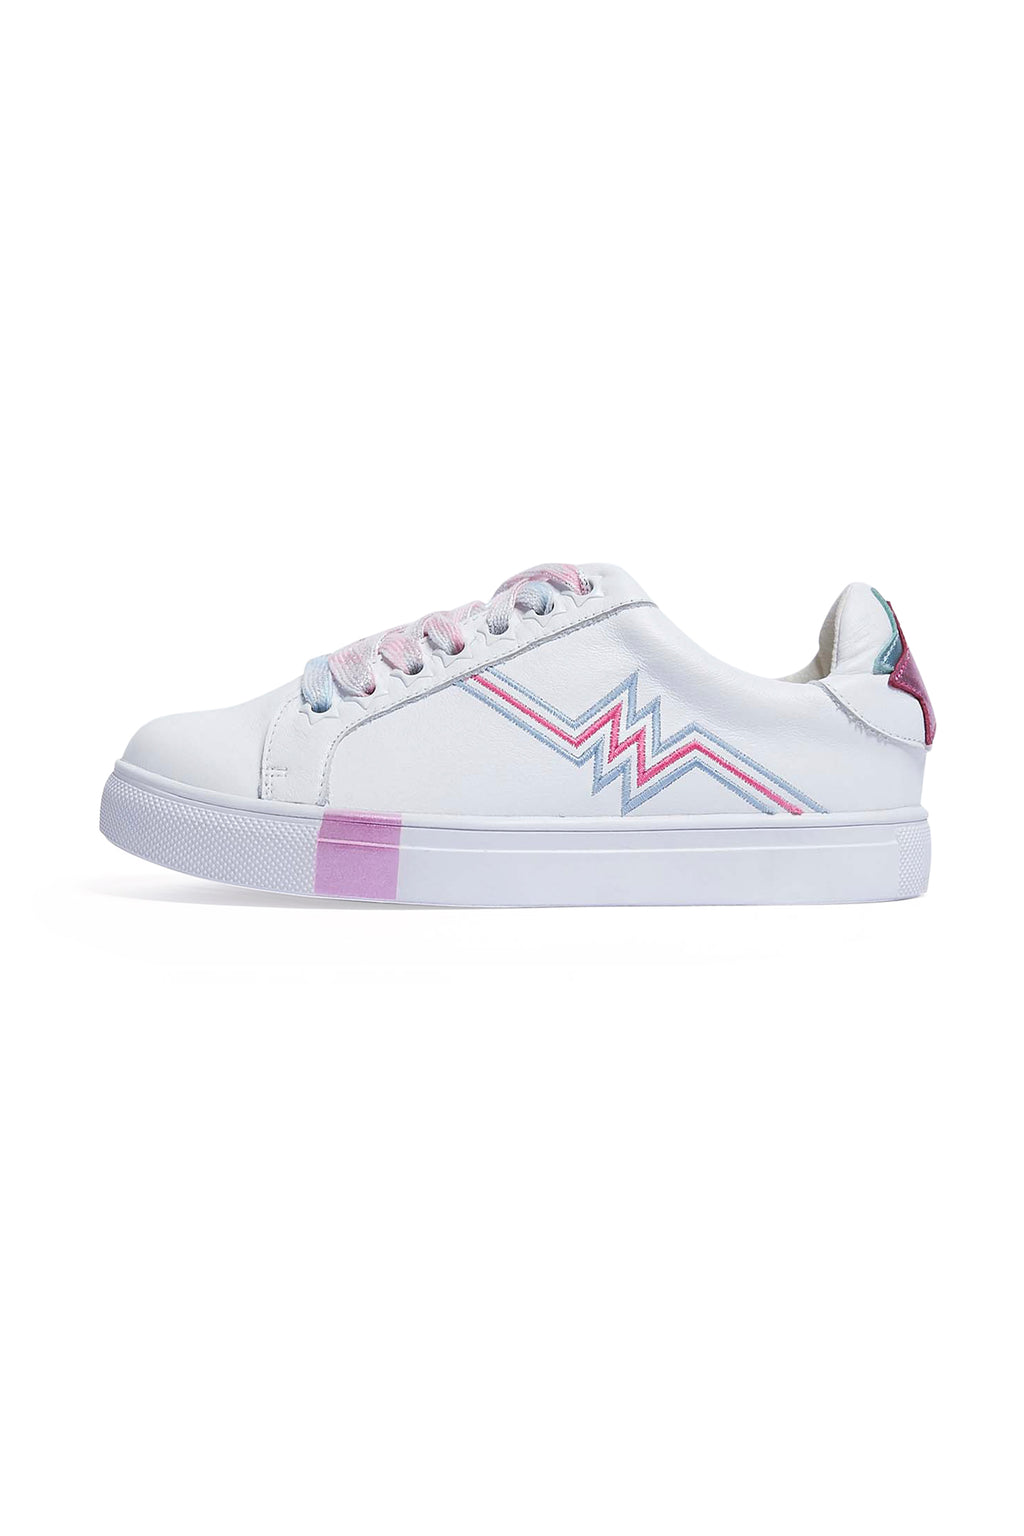 Kids White Leather Pink Heartbeats Trainers